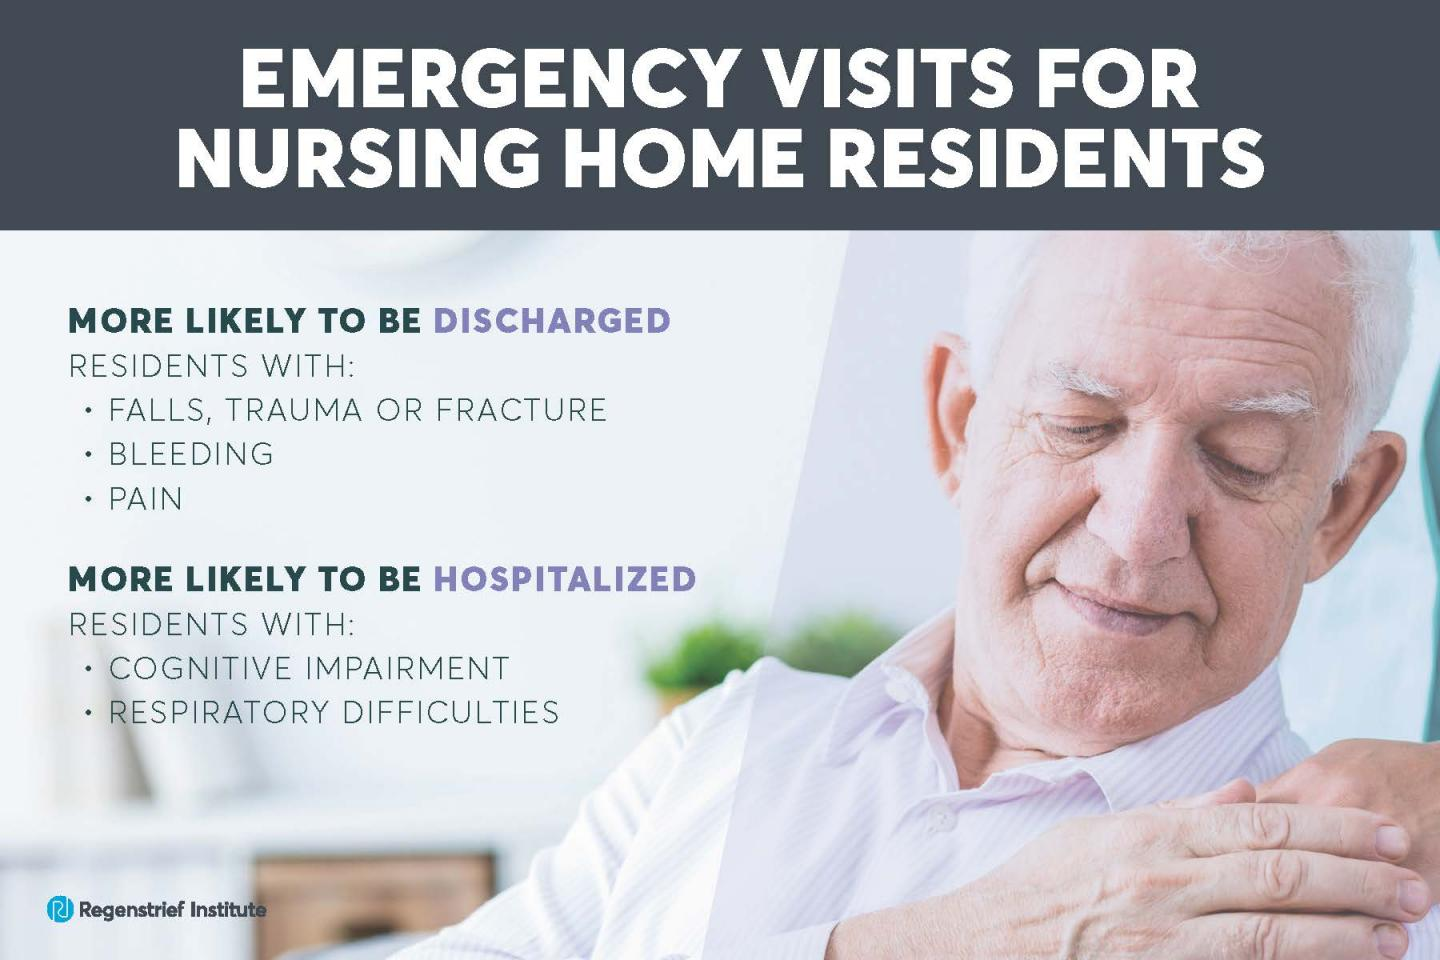 Long-stay nursing facility resident transfers: Who gets admitted to the hospital?